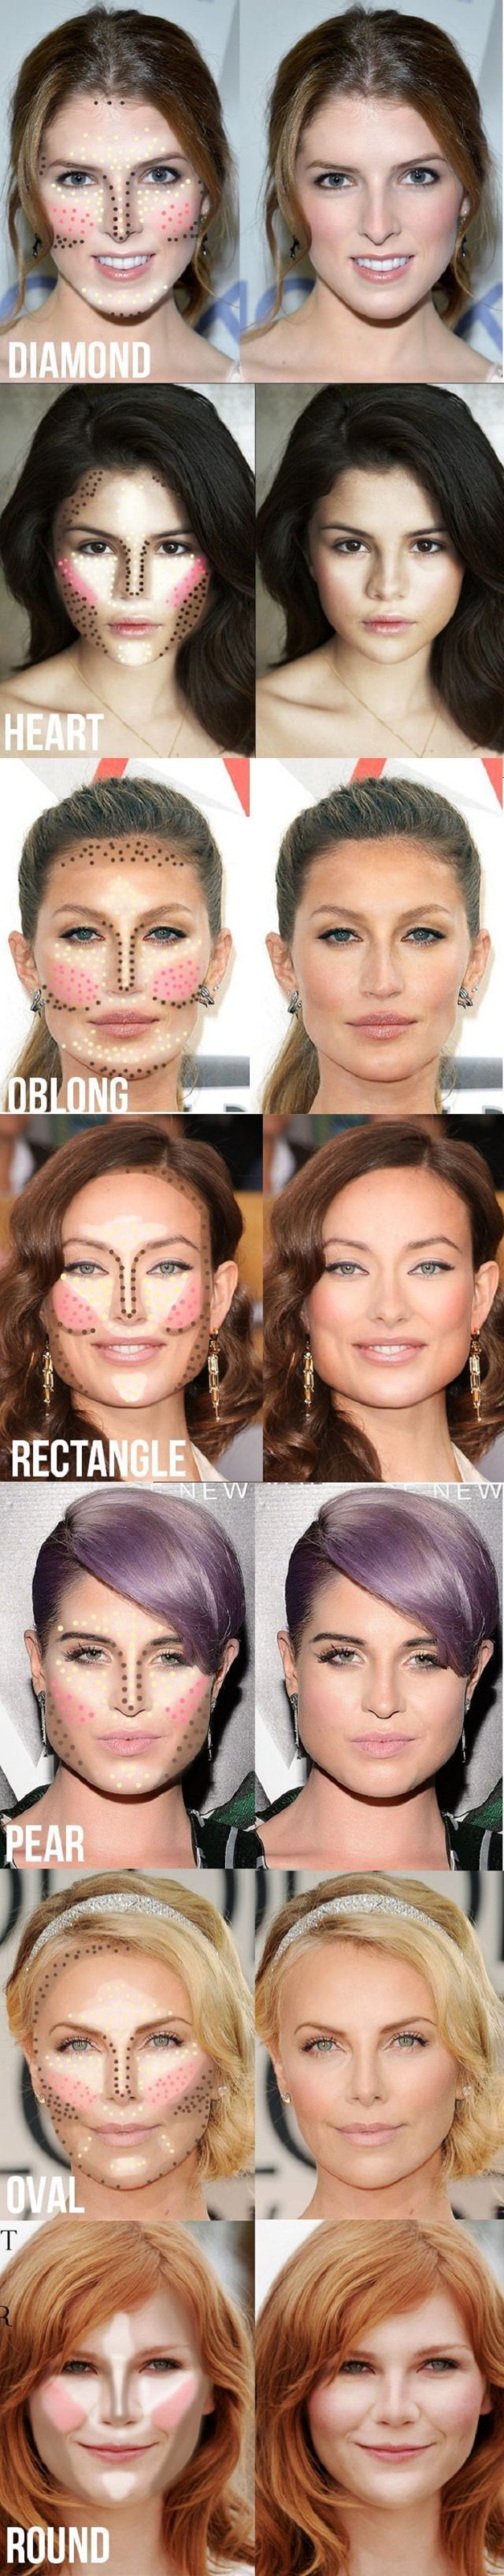 Highlighting and contouring guide for your face shape | 12 Best Beauty Tutorials for Fall 2014 http://www.jexshop.com/